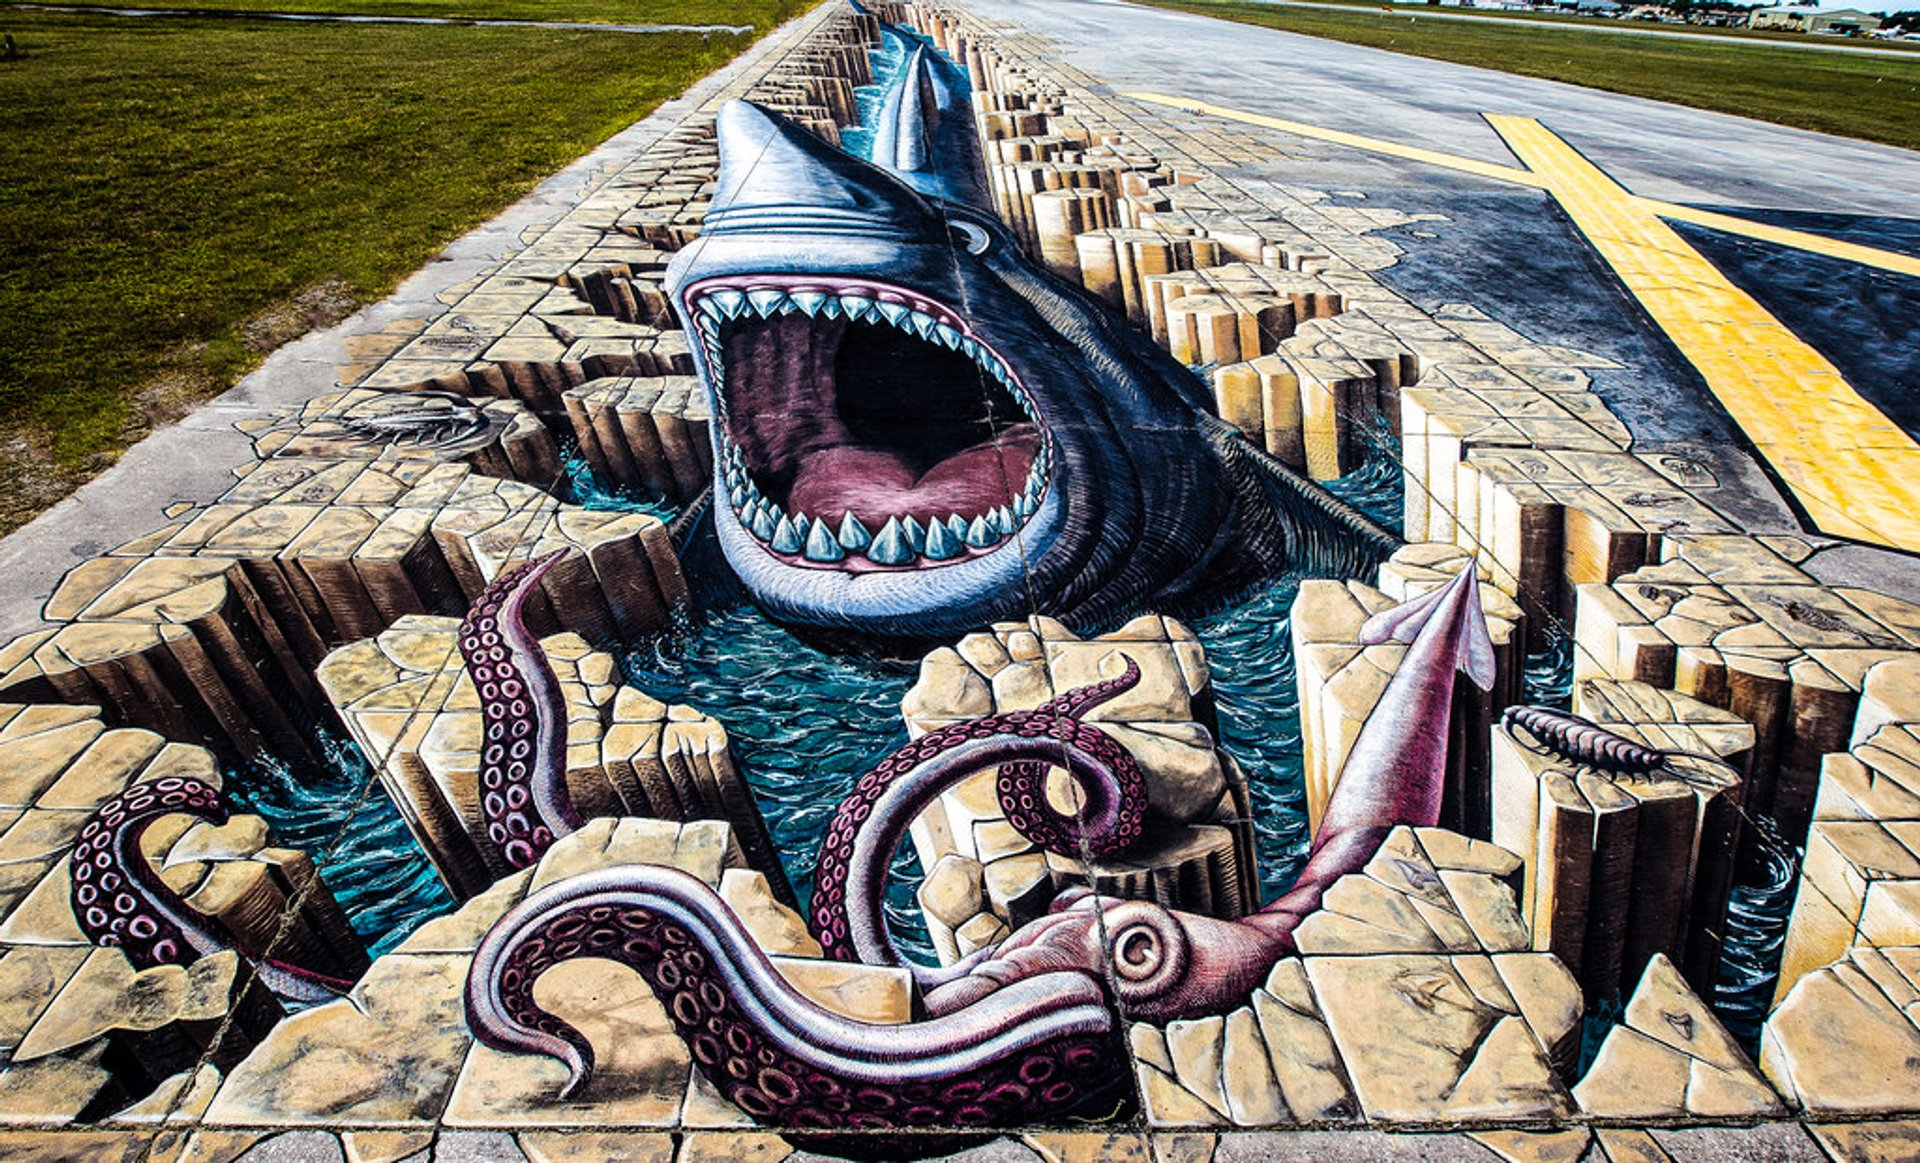 Best time to see Chalk Festival in Venice 2019